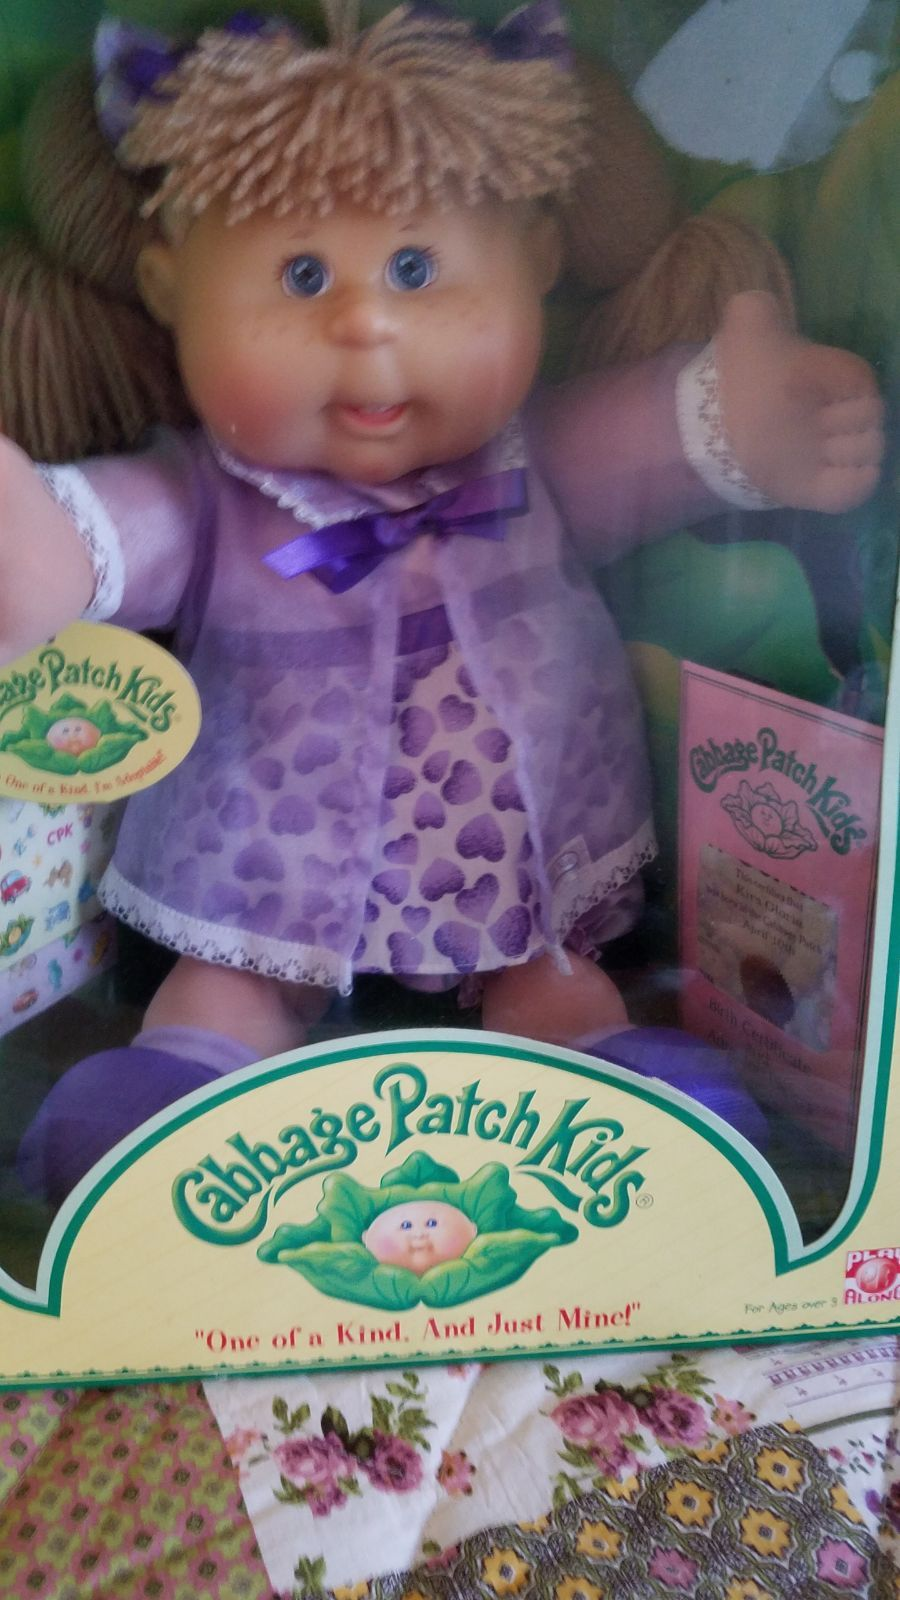 Pin By Noe On Dolls Cabbage Patch Babies Cabbage Patch Kids Dolls Cabbage Patch Dolls